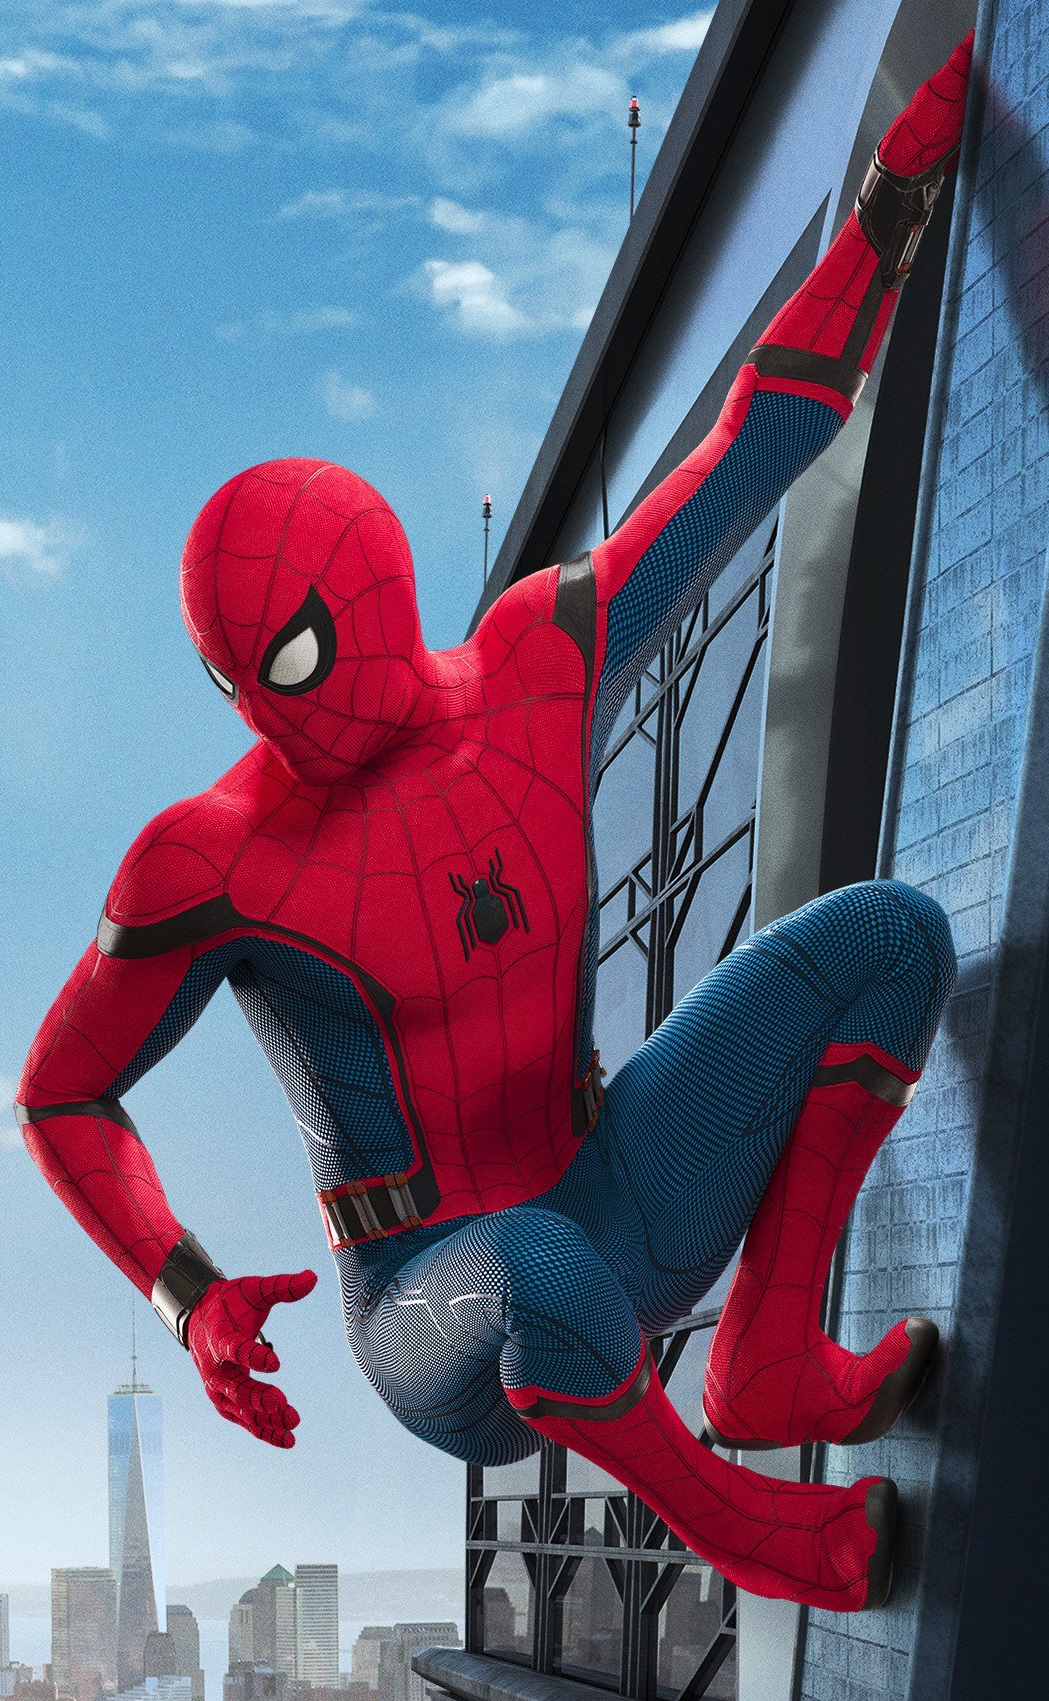 Spider Man Suit Marvel Cinematic Universe Wiki Fandom